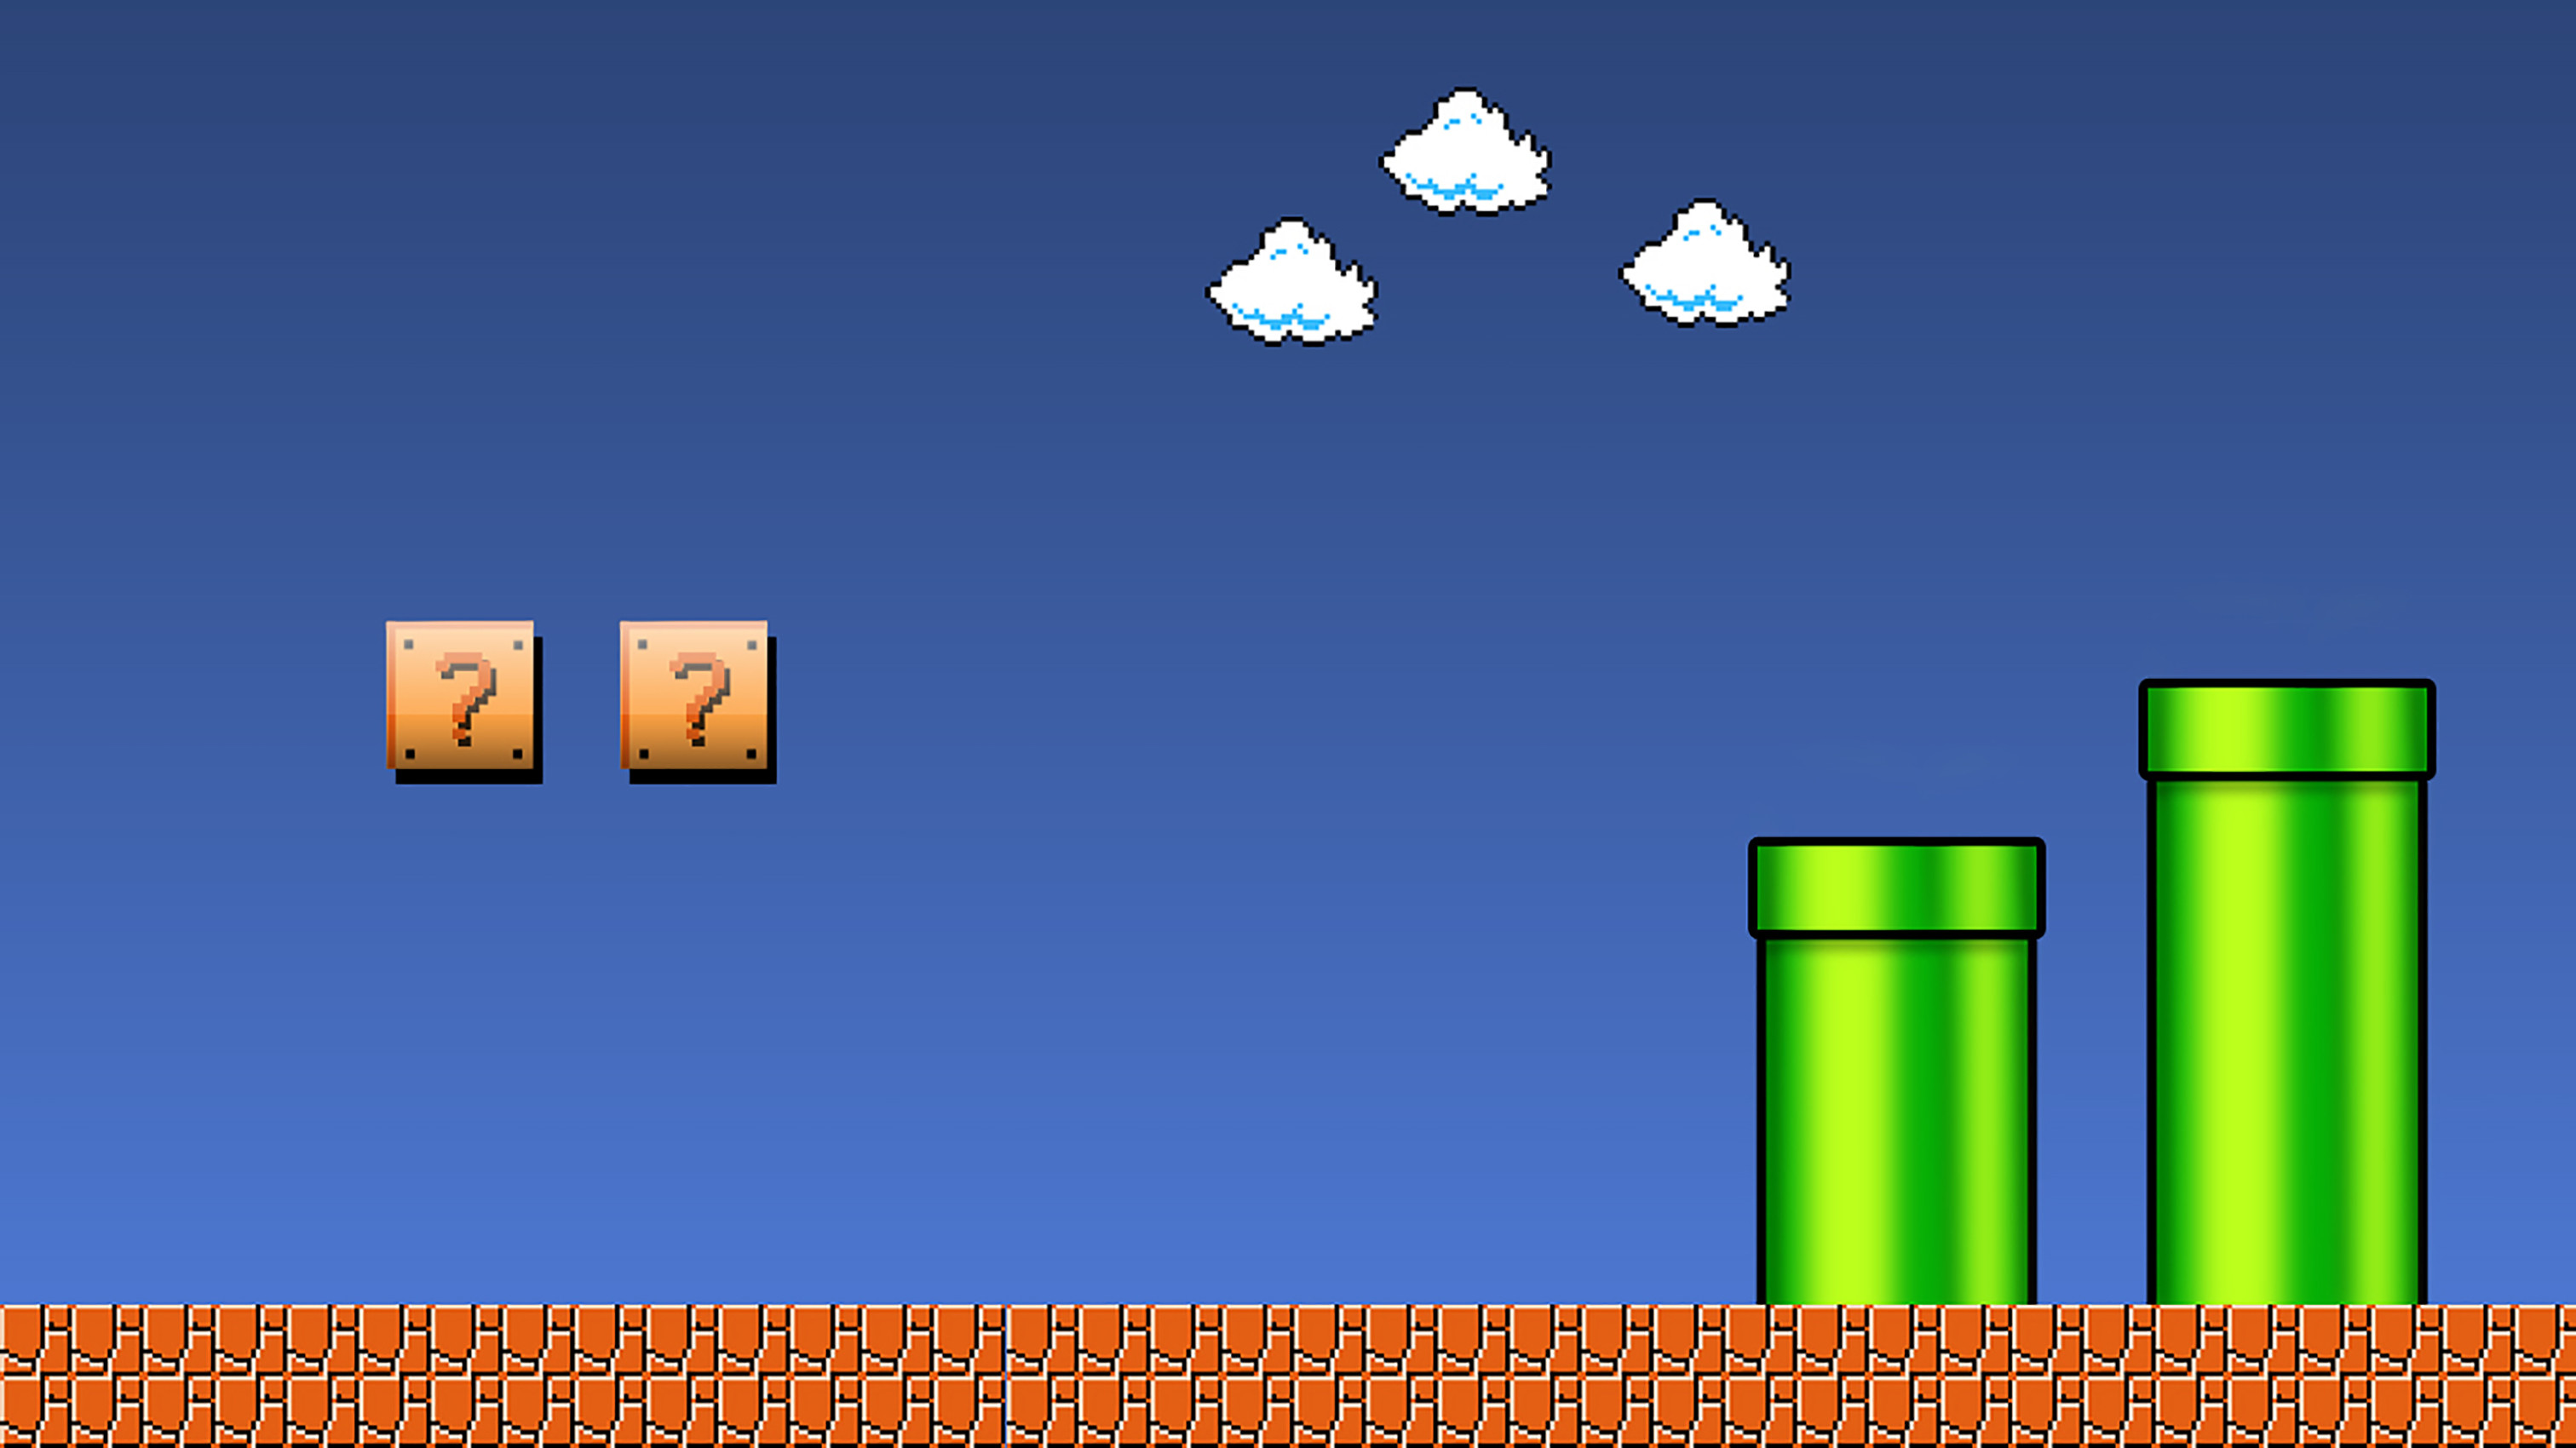 Super Mario Brothers Wallpaper created in Photoshop